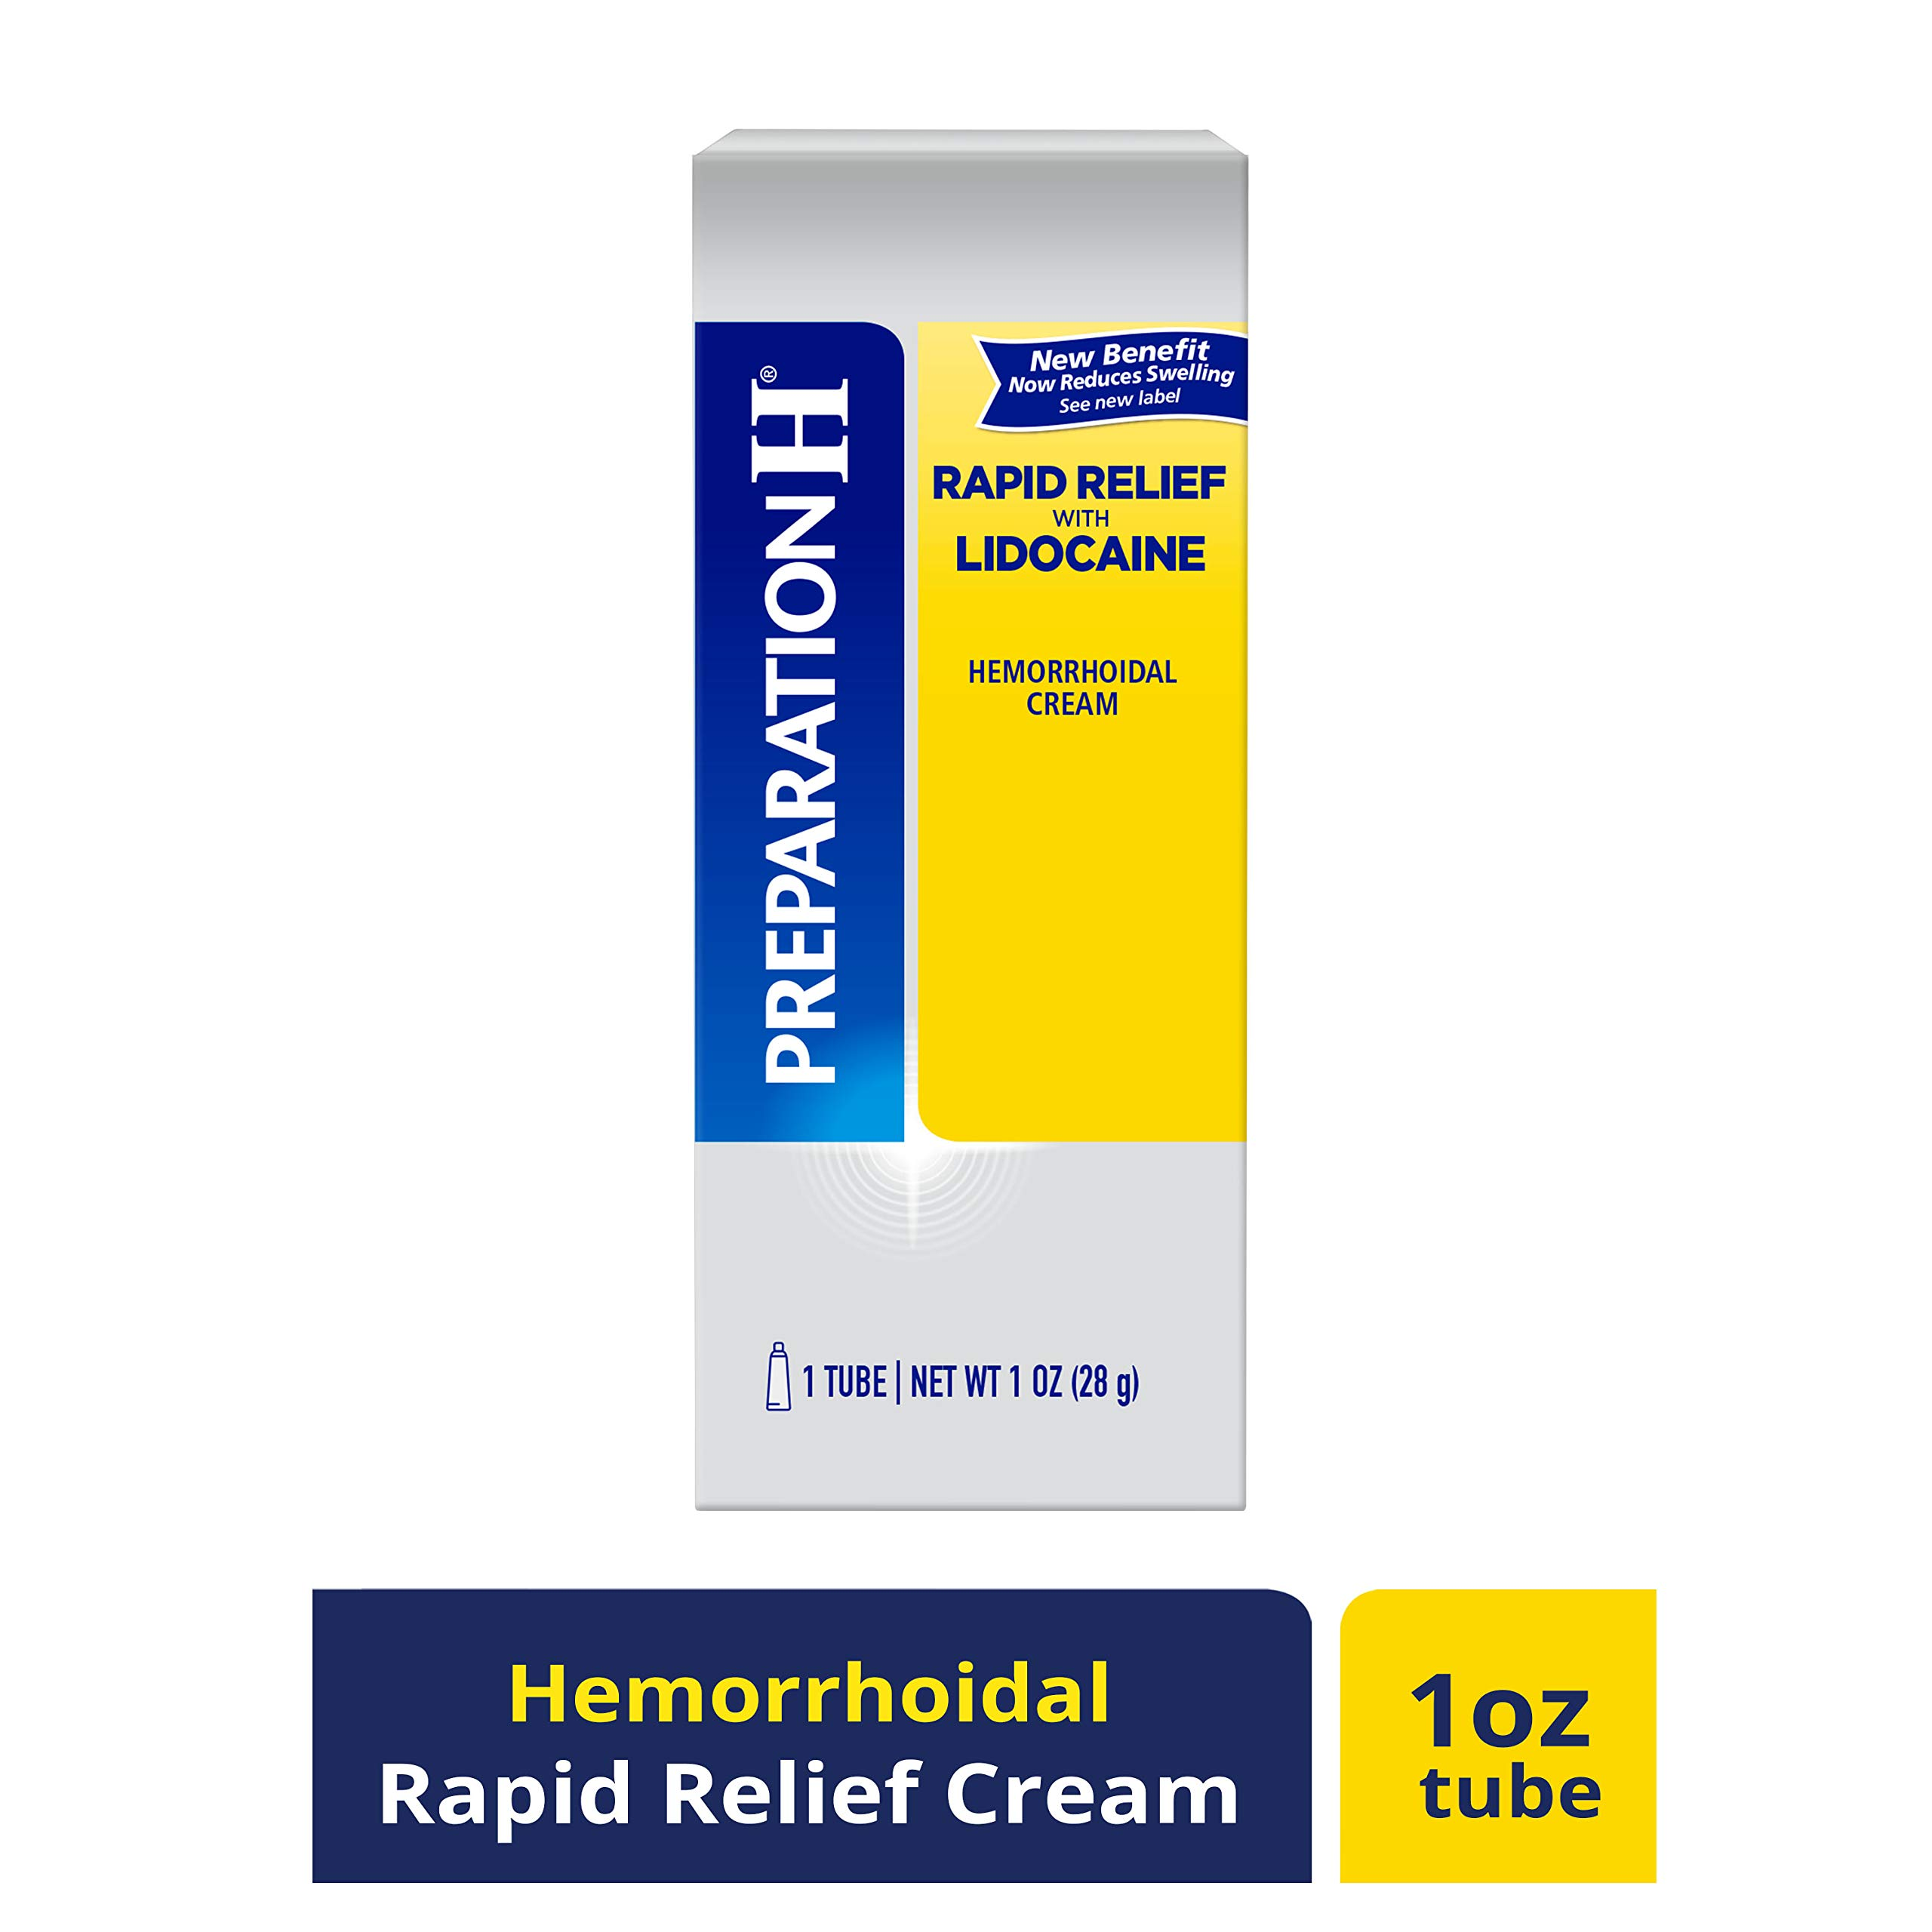 PREPARATION H Rapid Relief with Lidocaine Hemorrhoid Symptom Treatment Cream, Numbing Relief for Pain, Burning & Itching, Reduces Swelling, Tube (1.0 oz) by Preparation H